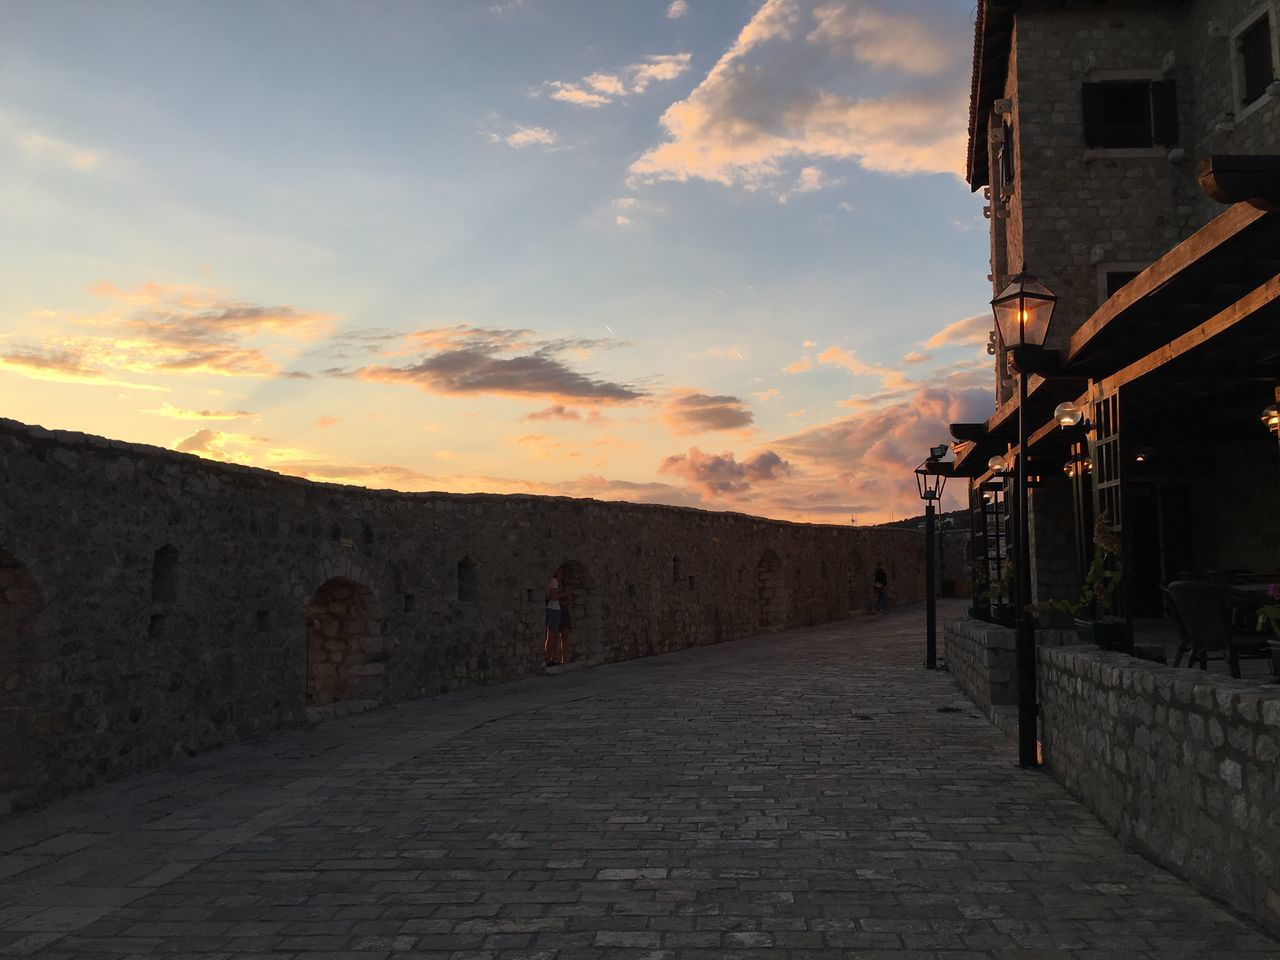 Sunset Romantic Sky Travel Destination Ulcinj Montenegro Old Town Travel Destinations